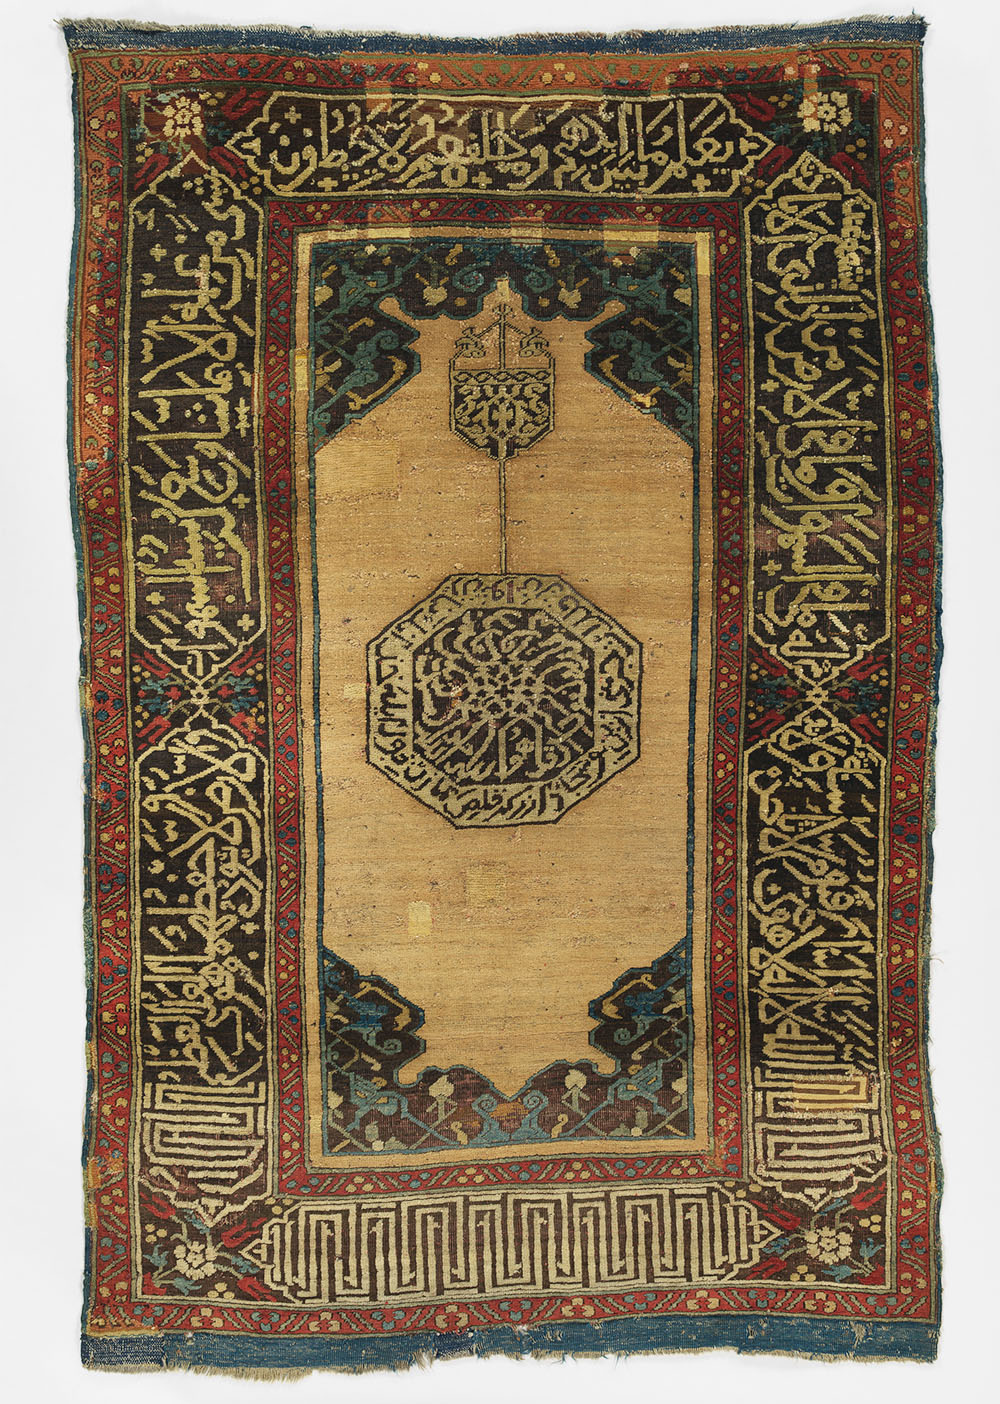 "Rug with pseudo-kufic inscriptions, attributed to Turkey, 17th century. Wool, symmetrically knotted, 1.04 x 1.63 m (3' 5"" x 5' 4""). The Met, 22.100.123, The James F. Ballard Collection, Gift of James F. Ballard, 1922"